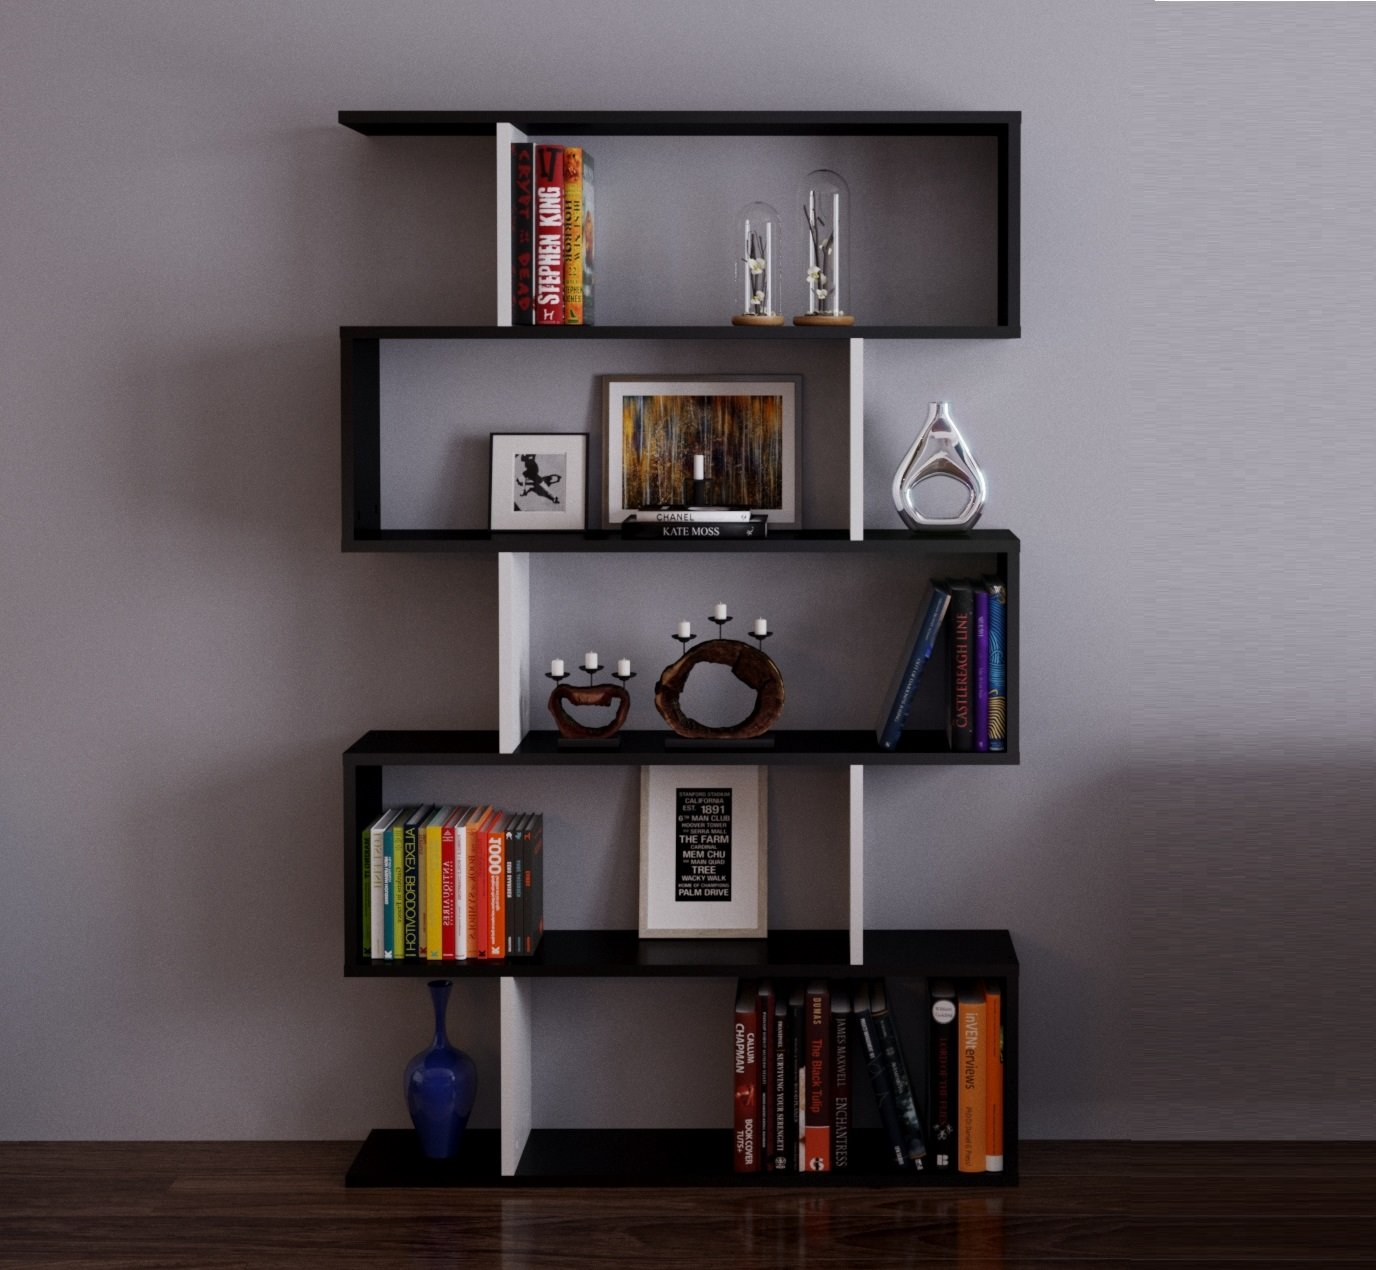 HOMIDEA Core Biblioth¨que étag¨re de Rangement étag¨re pour